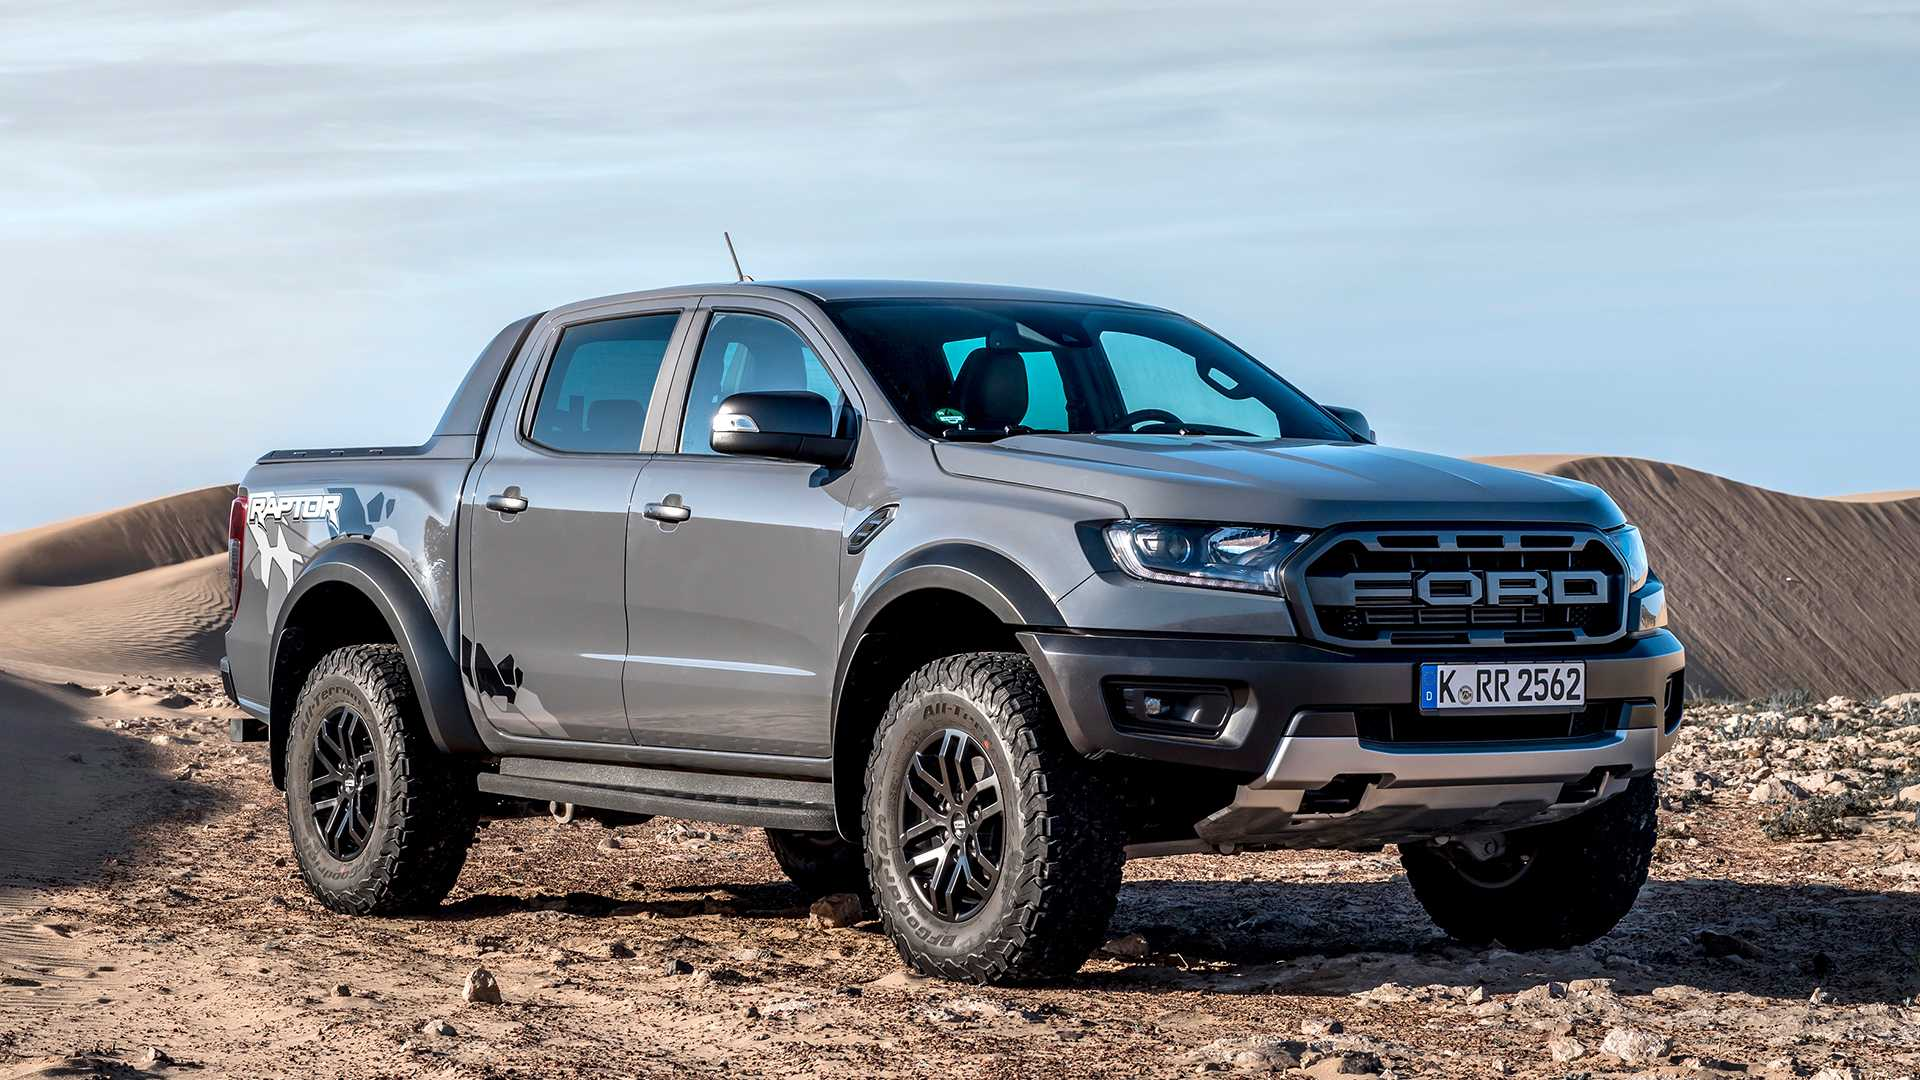 52 The Best 2019 Usa Ford Ranger Release Date And Concept